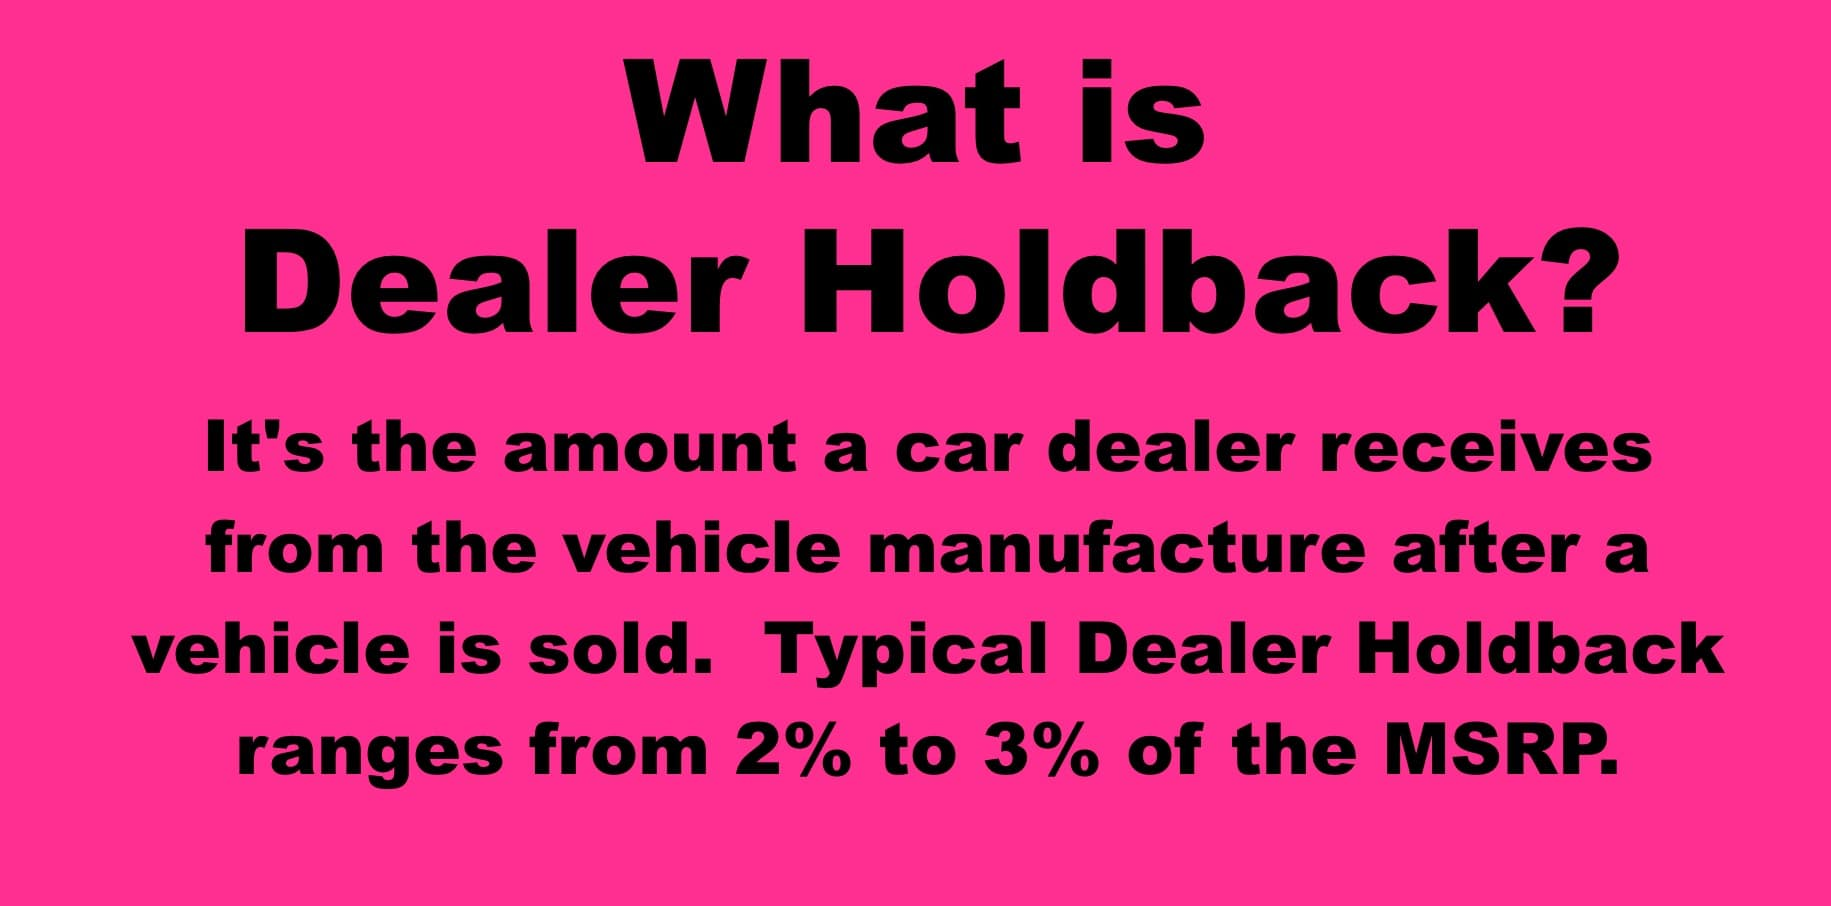 What is Dealer Holdback